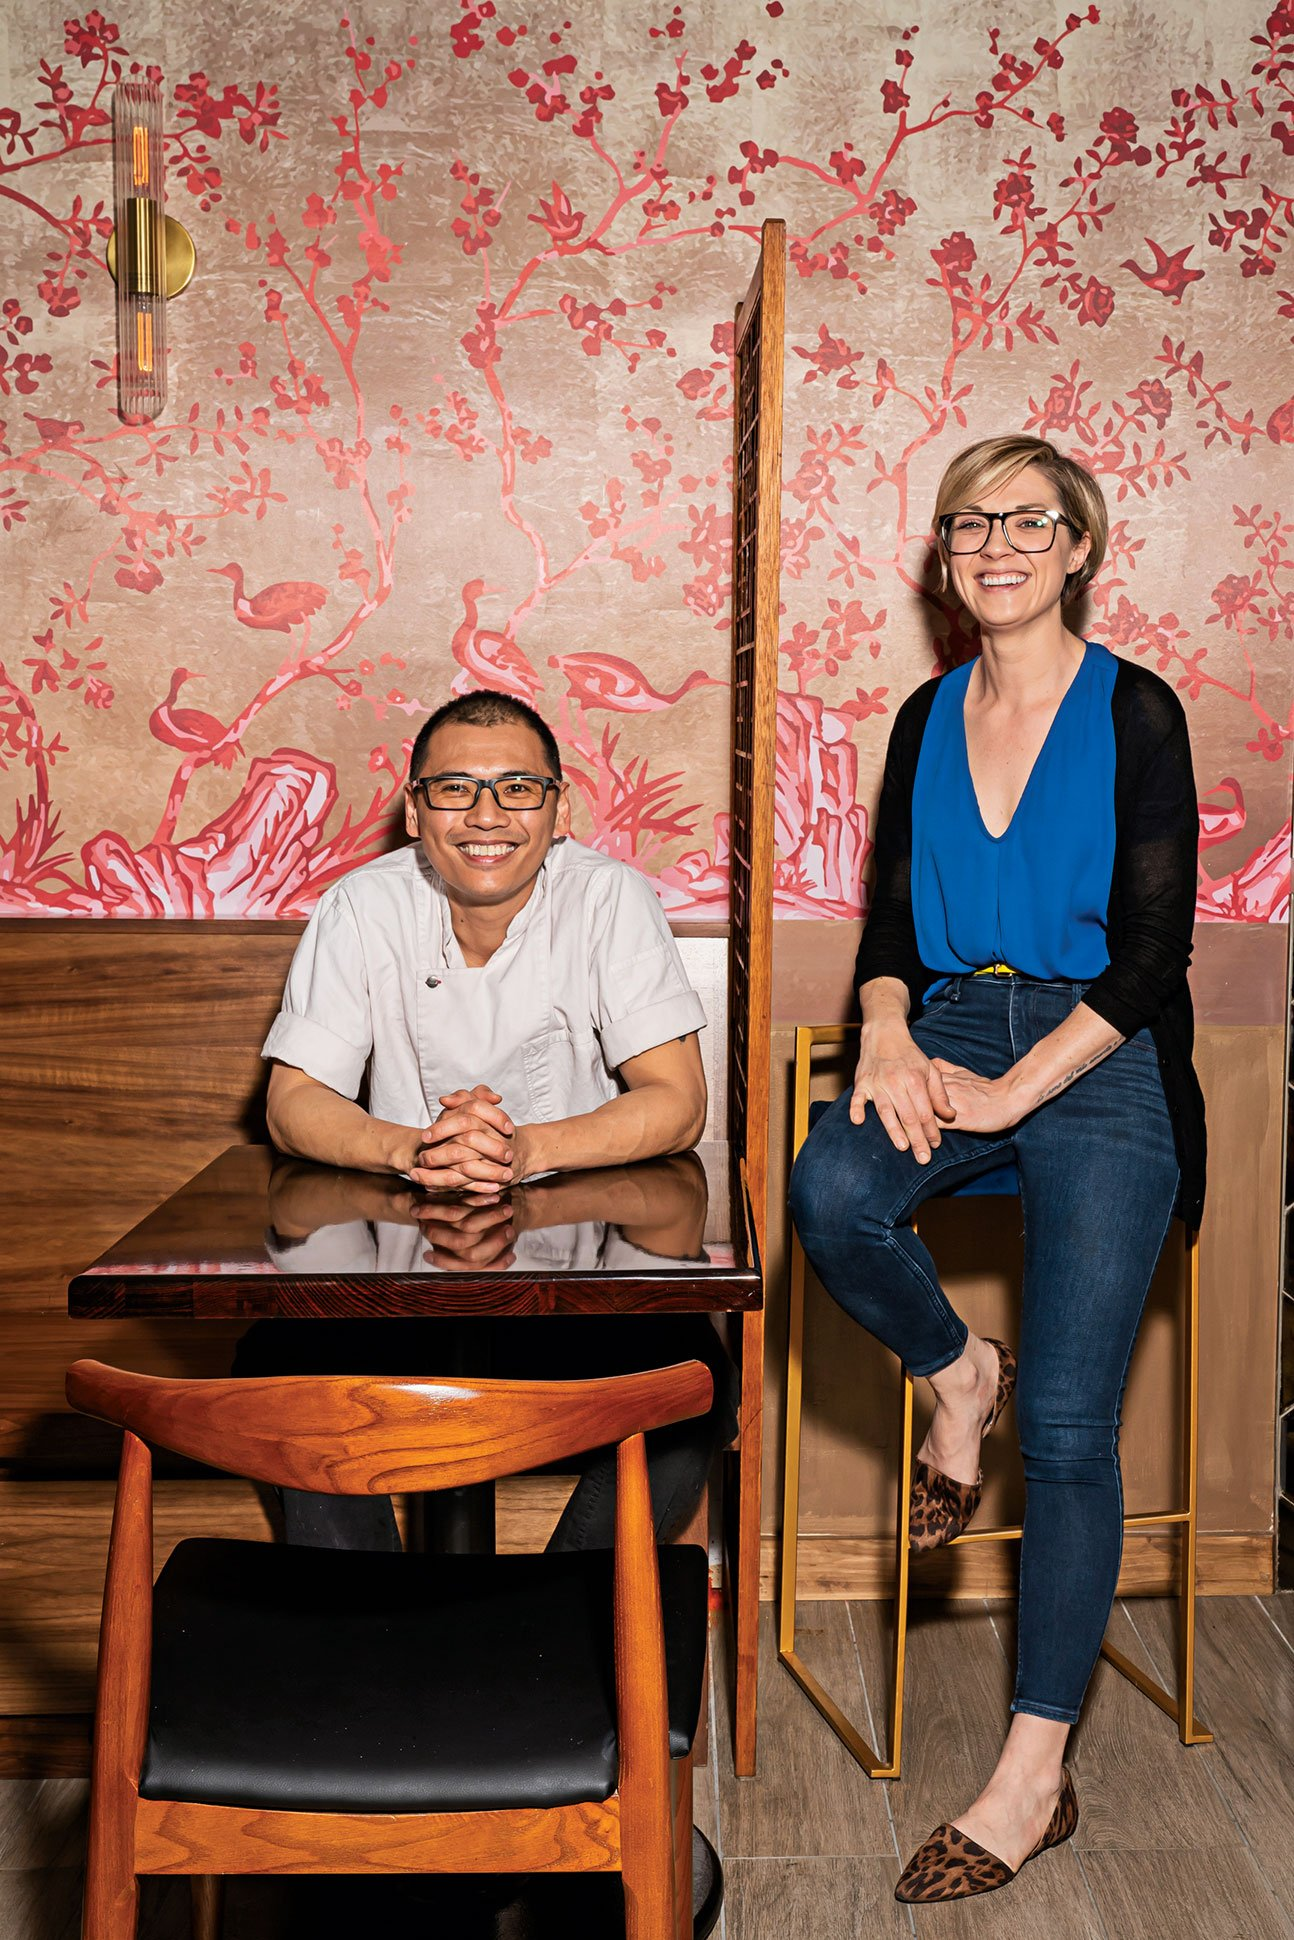 Owners Henji Cheung and Sarah Thmopson. Photograph by Scott Suchman.